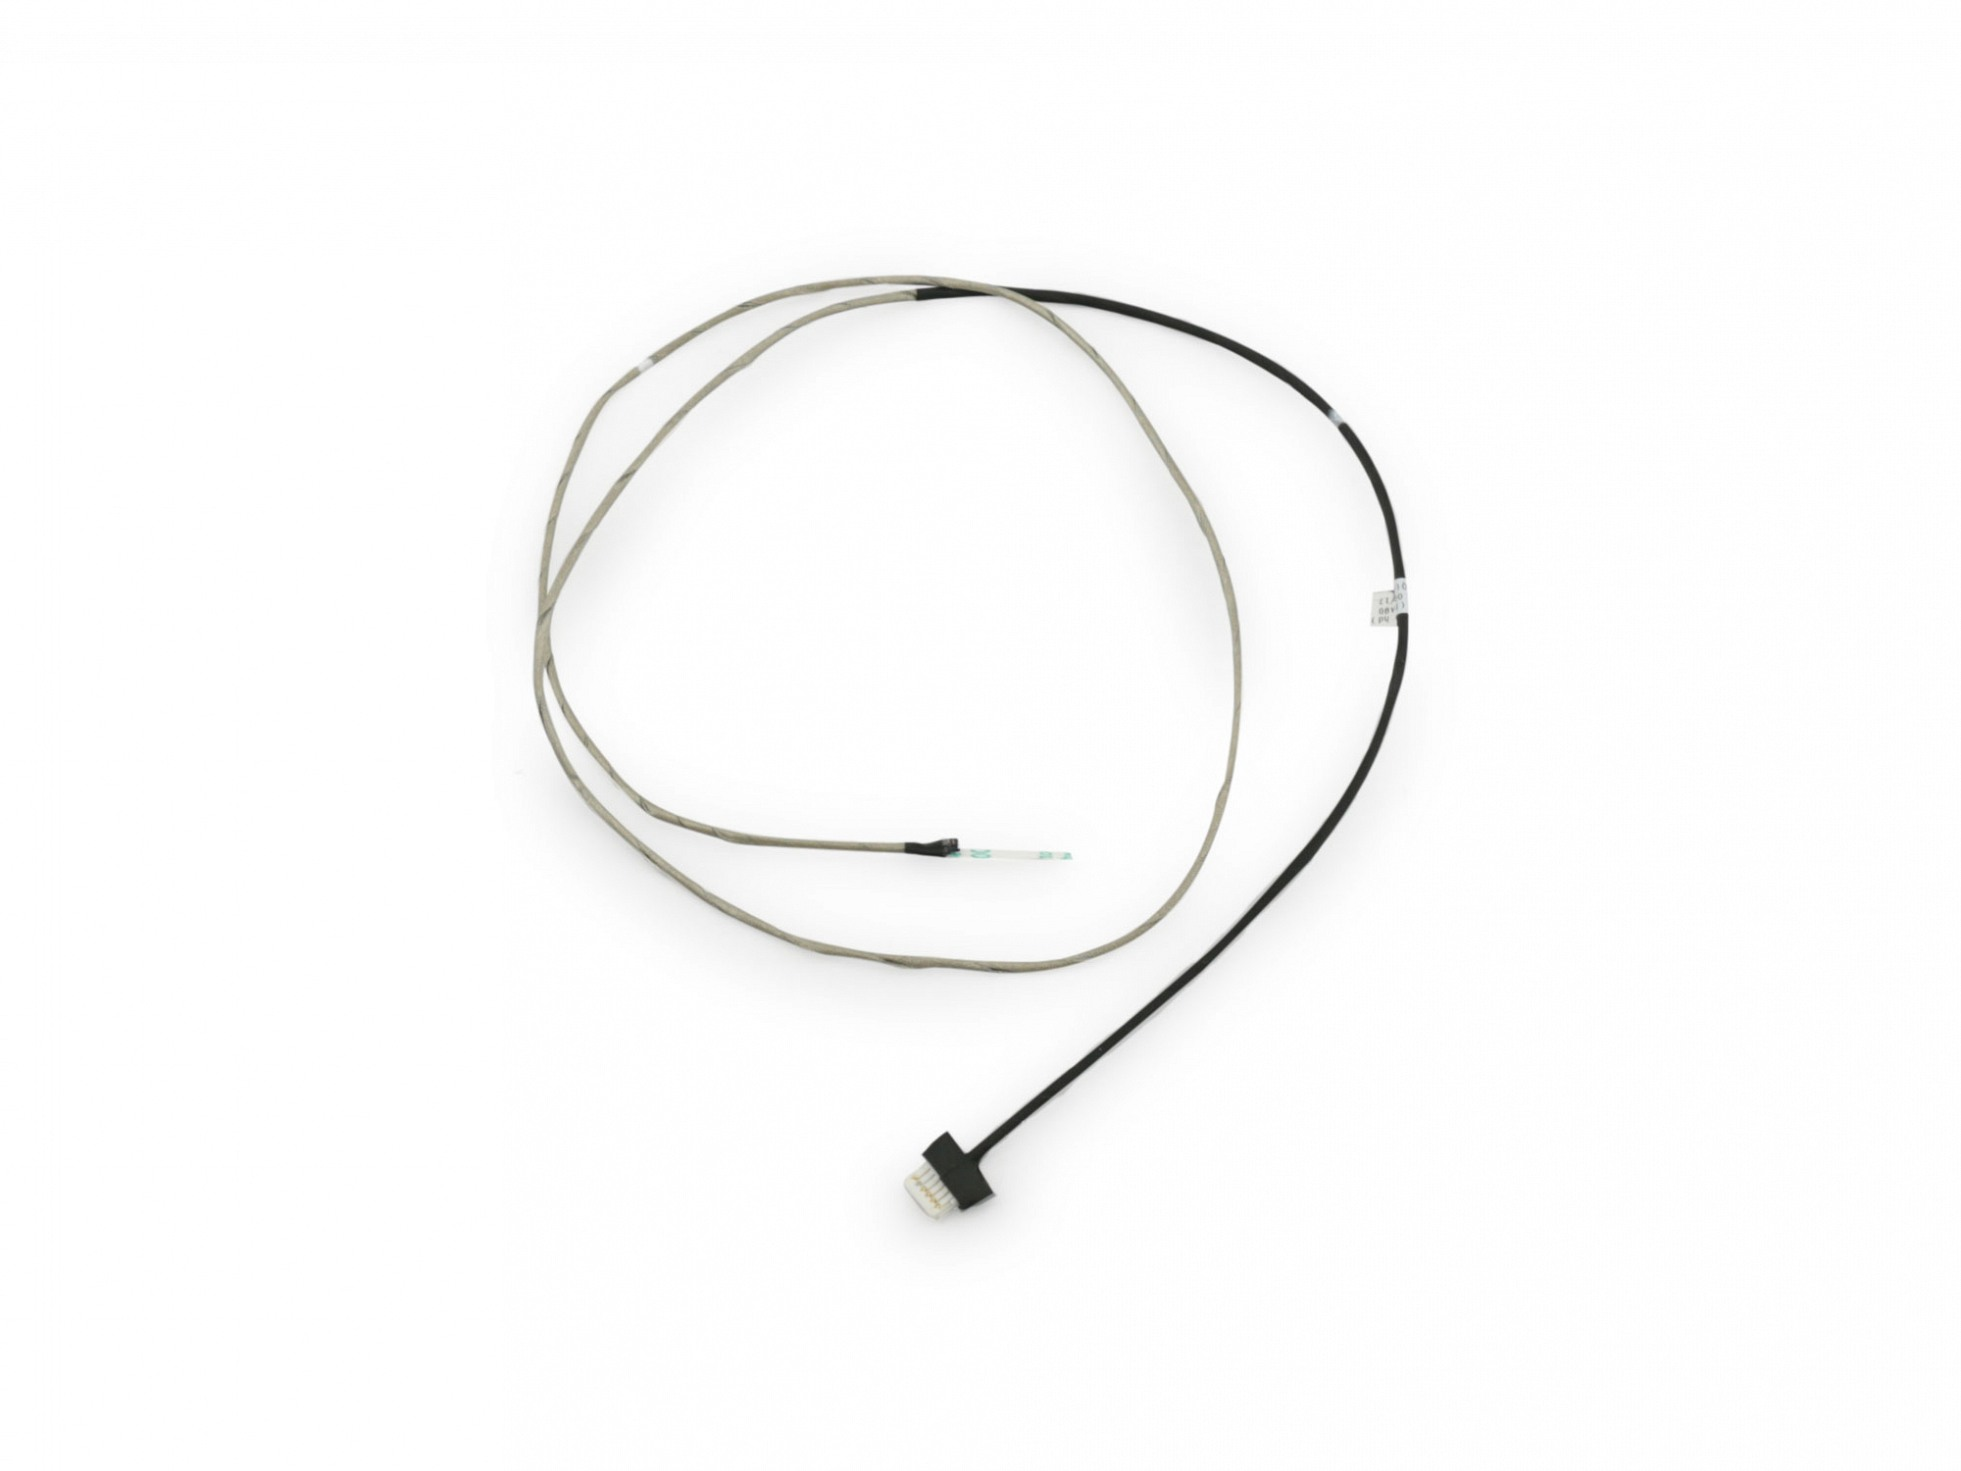 Acer 50.MQSN1.008 WebCam-Kabel